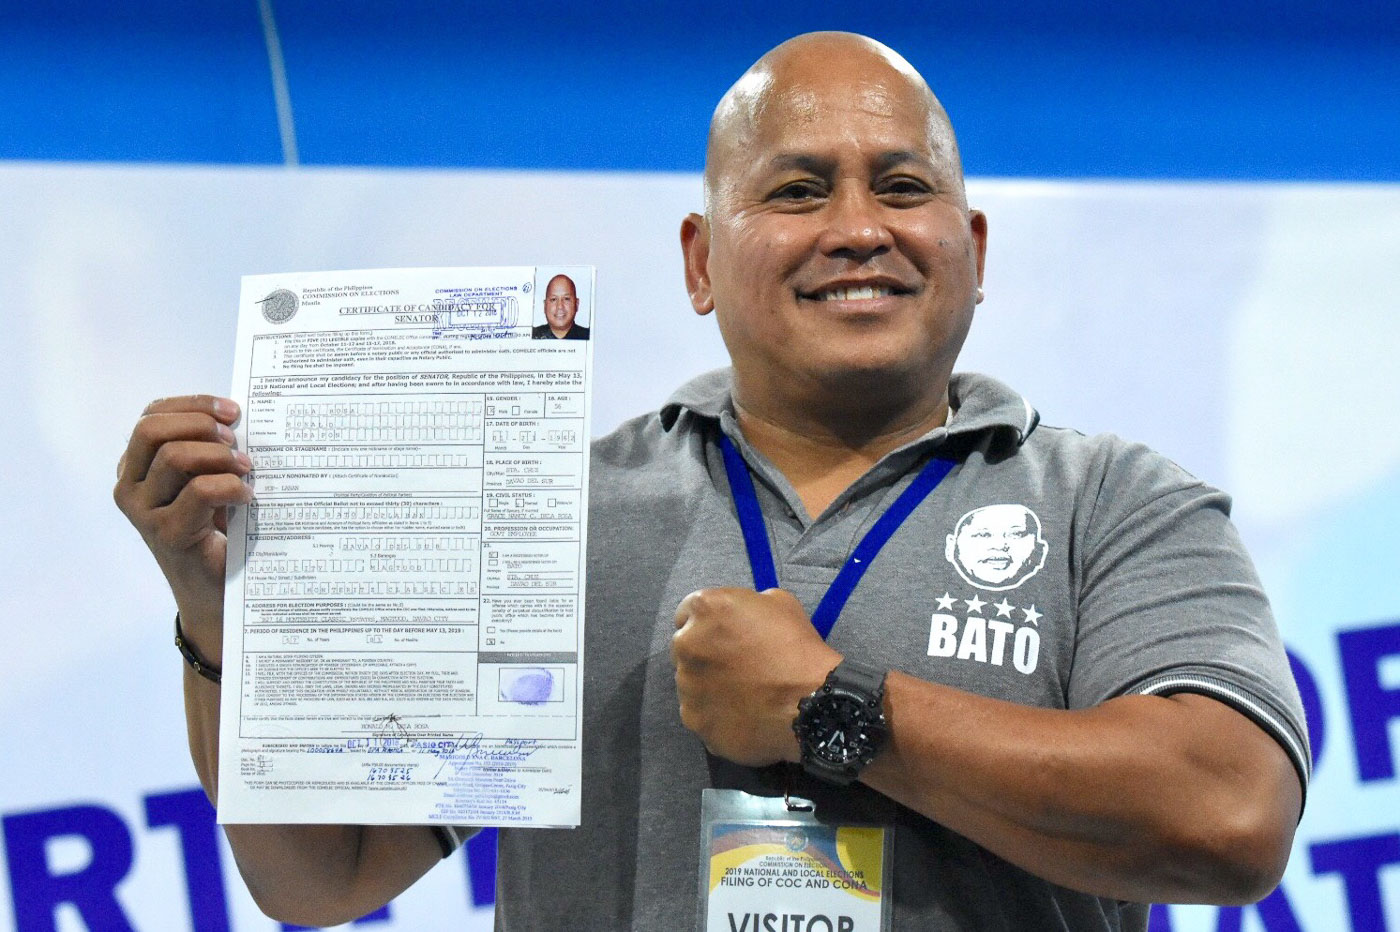 BuCor director Ronald dela Rosa files his Certificate of Candidacy for Senator on October 12, 2018 at the Comelec office in Manila. Photo by Angie de Silva/Rappler